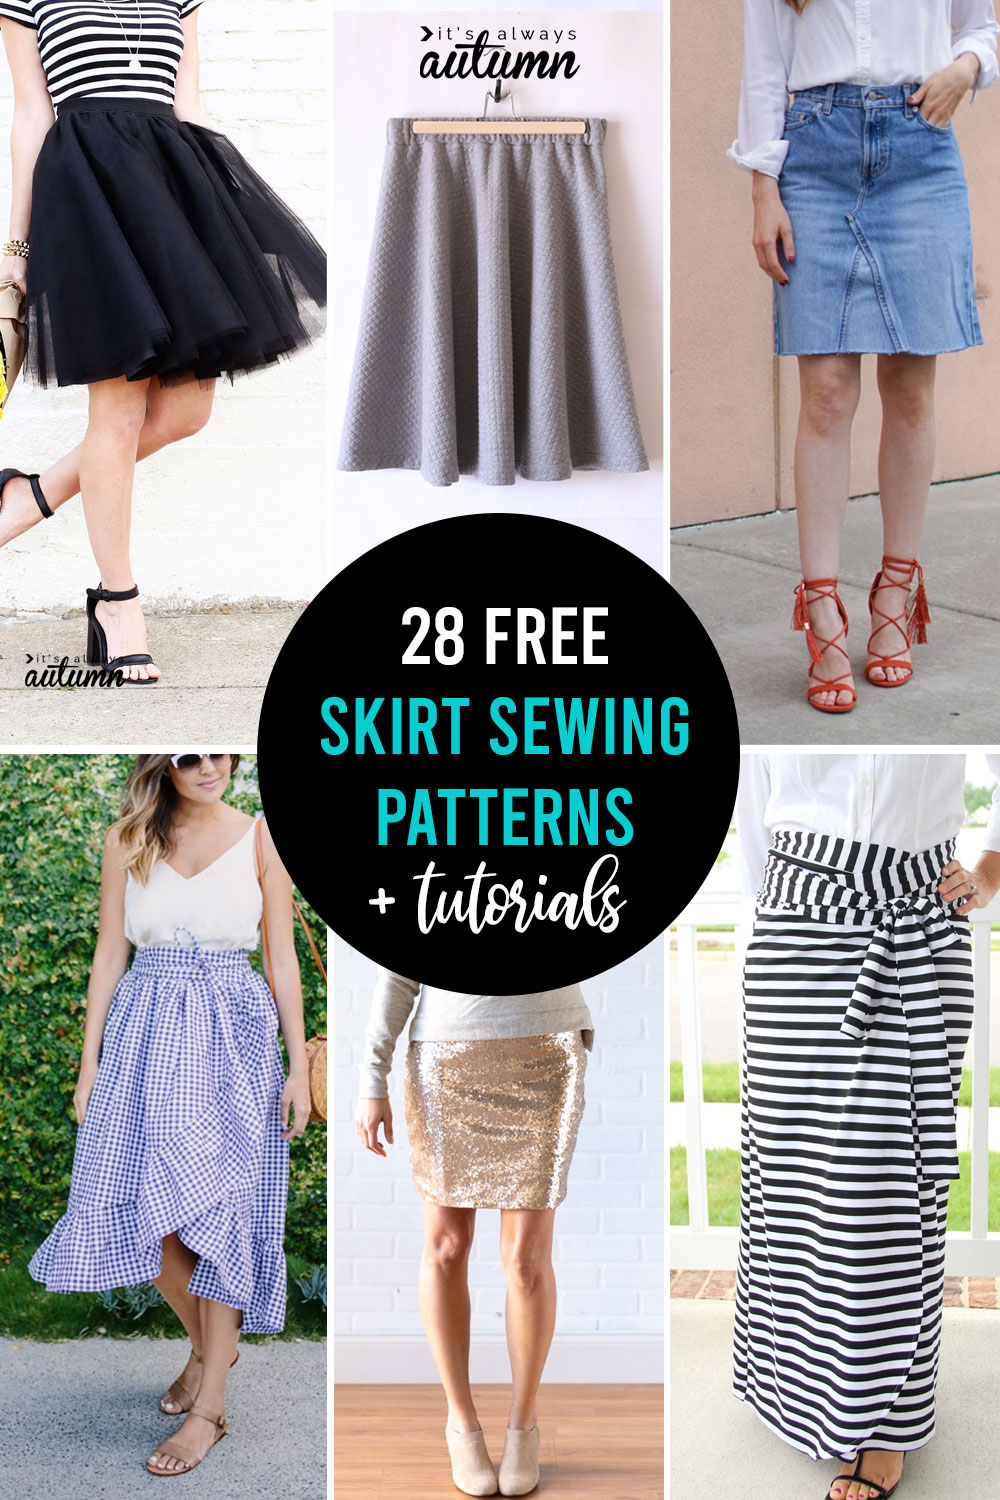 How To Make A Skirt 28 Free Skirt Patterns It S Always Autumn